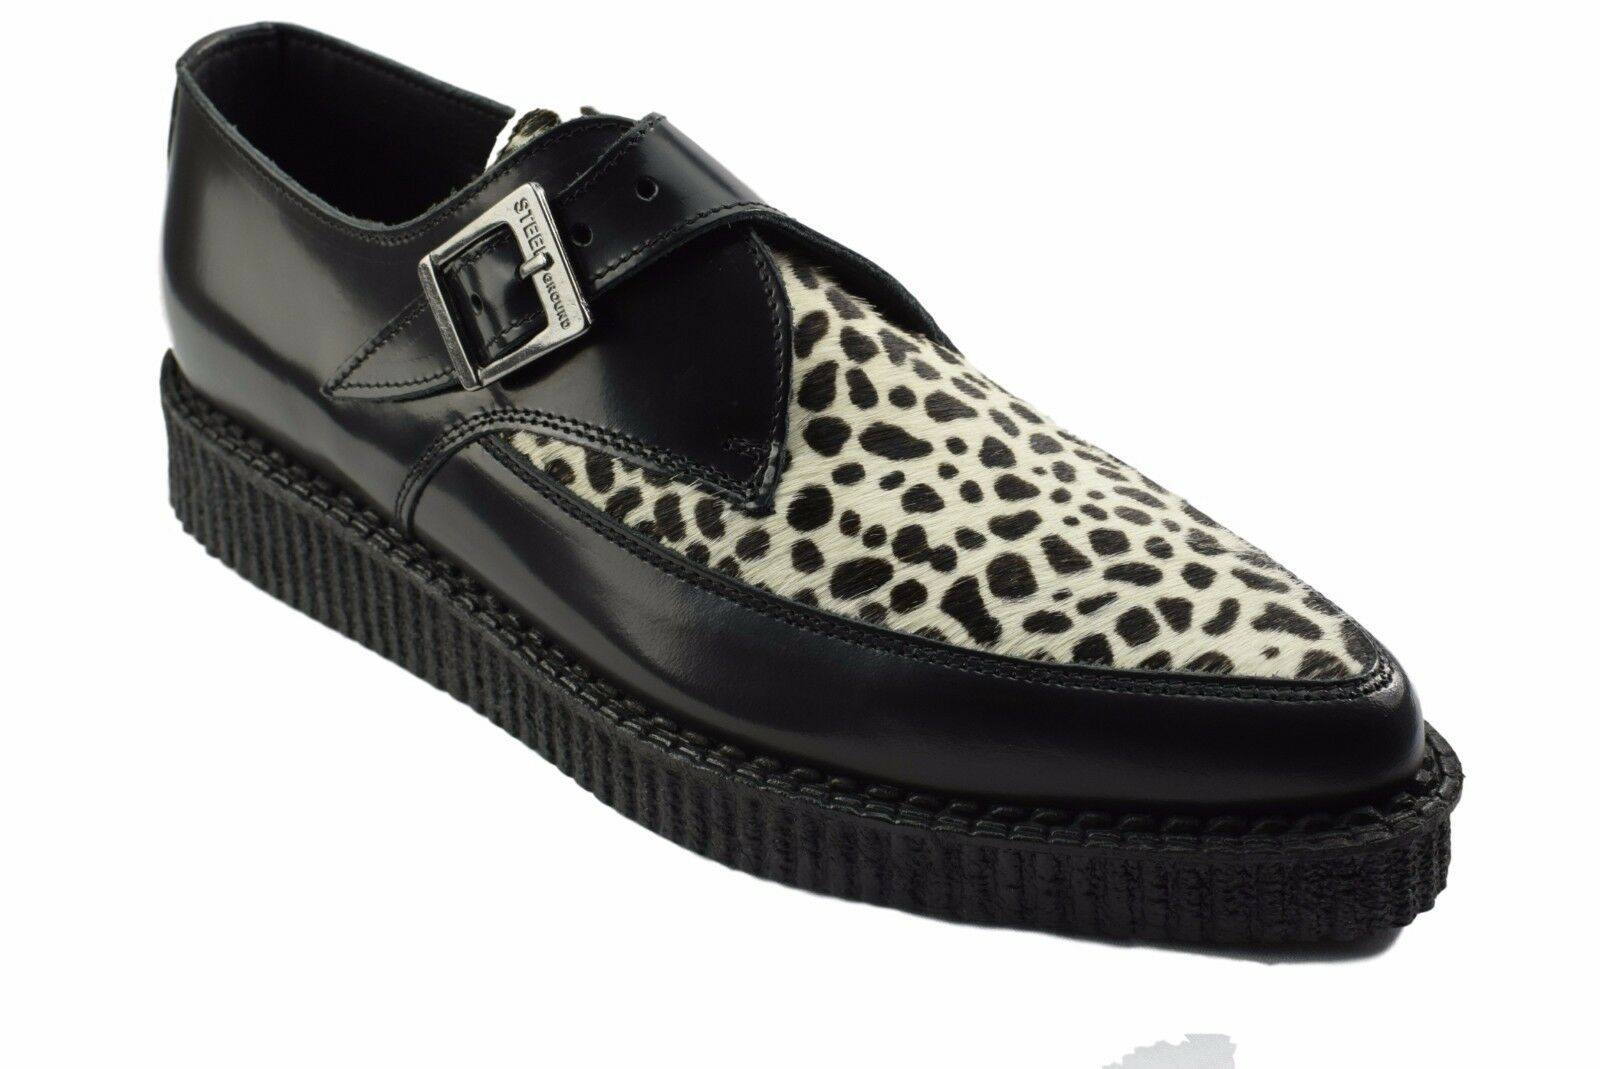 Steel Ground Schuhes schwarz Leder WEISS Leopard Creepers Monk Buckle Pointed